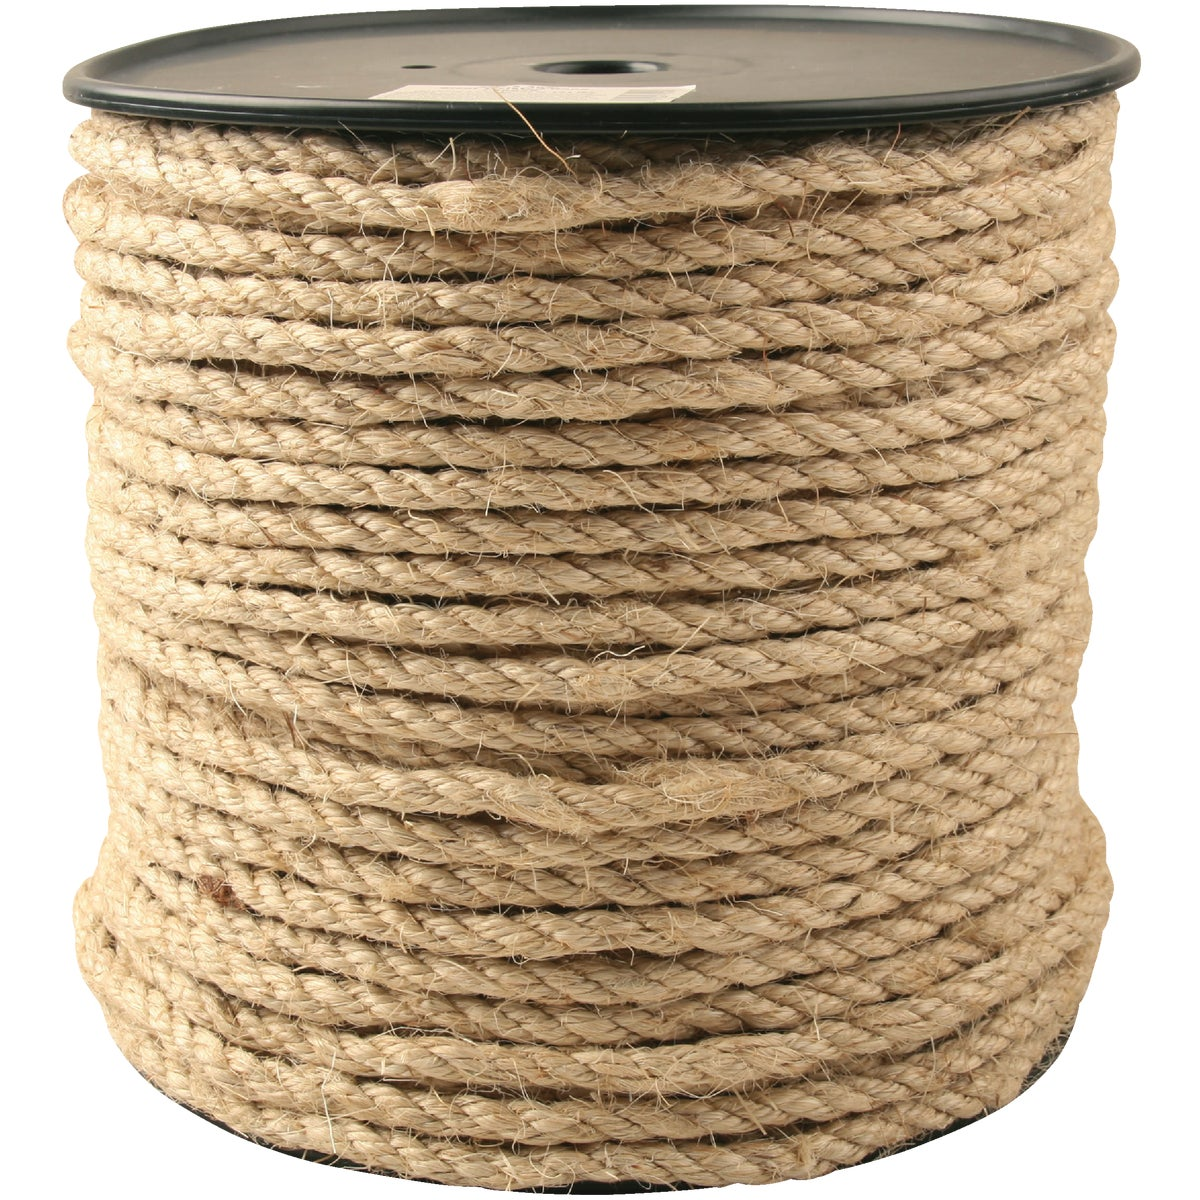 "3/8""X365'TWST SISAL ROPE - 748276 by Do it Best"